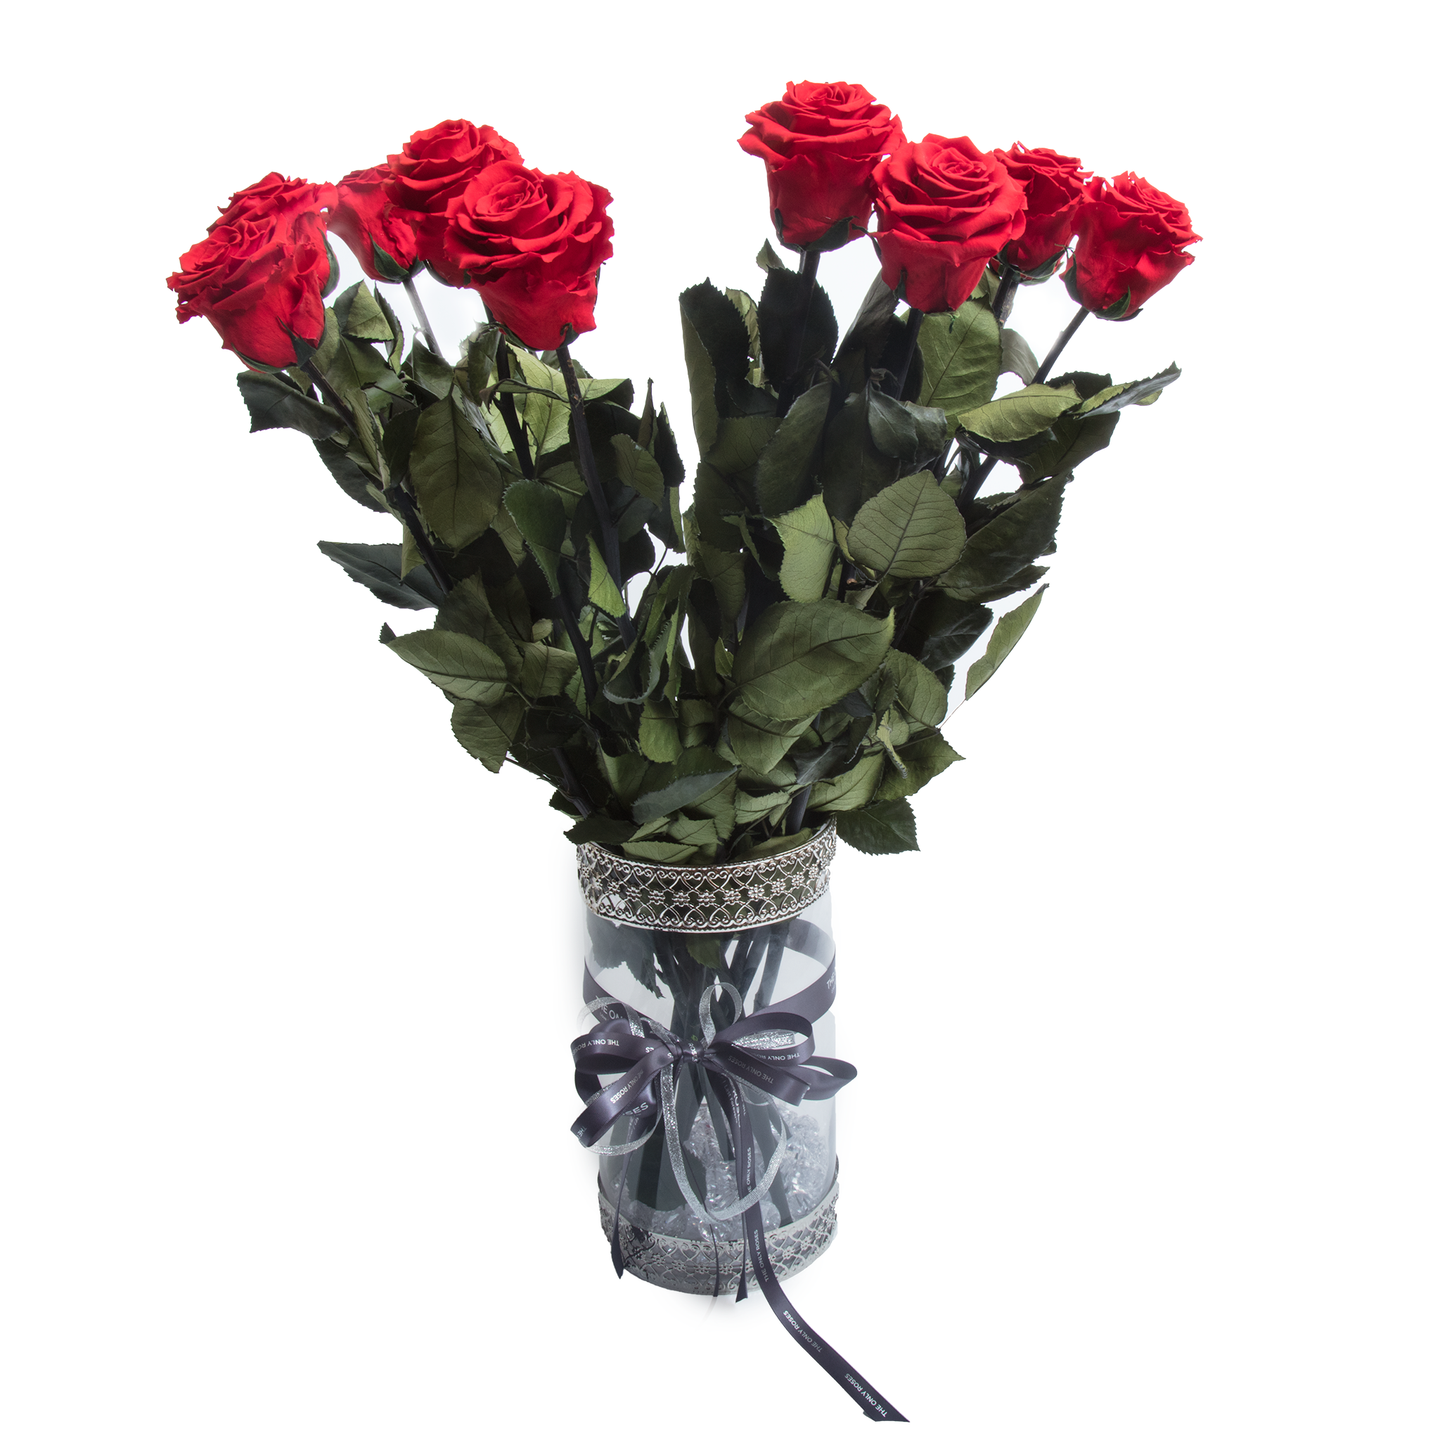 12 Long Stem Red Preserved Roses Luxury Bouquet In Glass Vase - The Only Roses